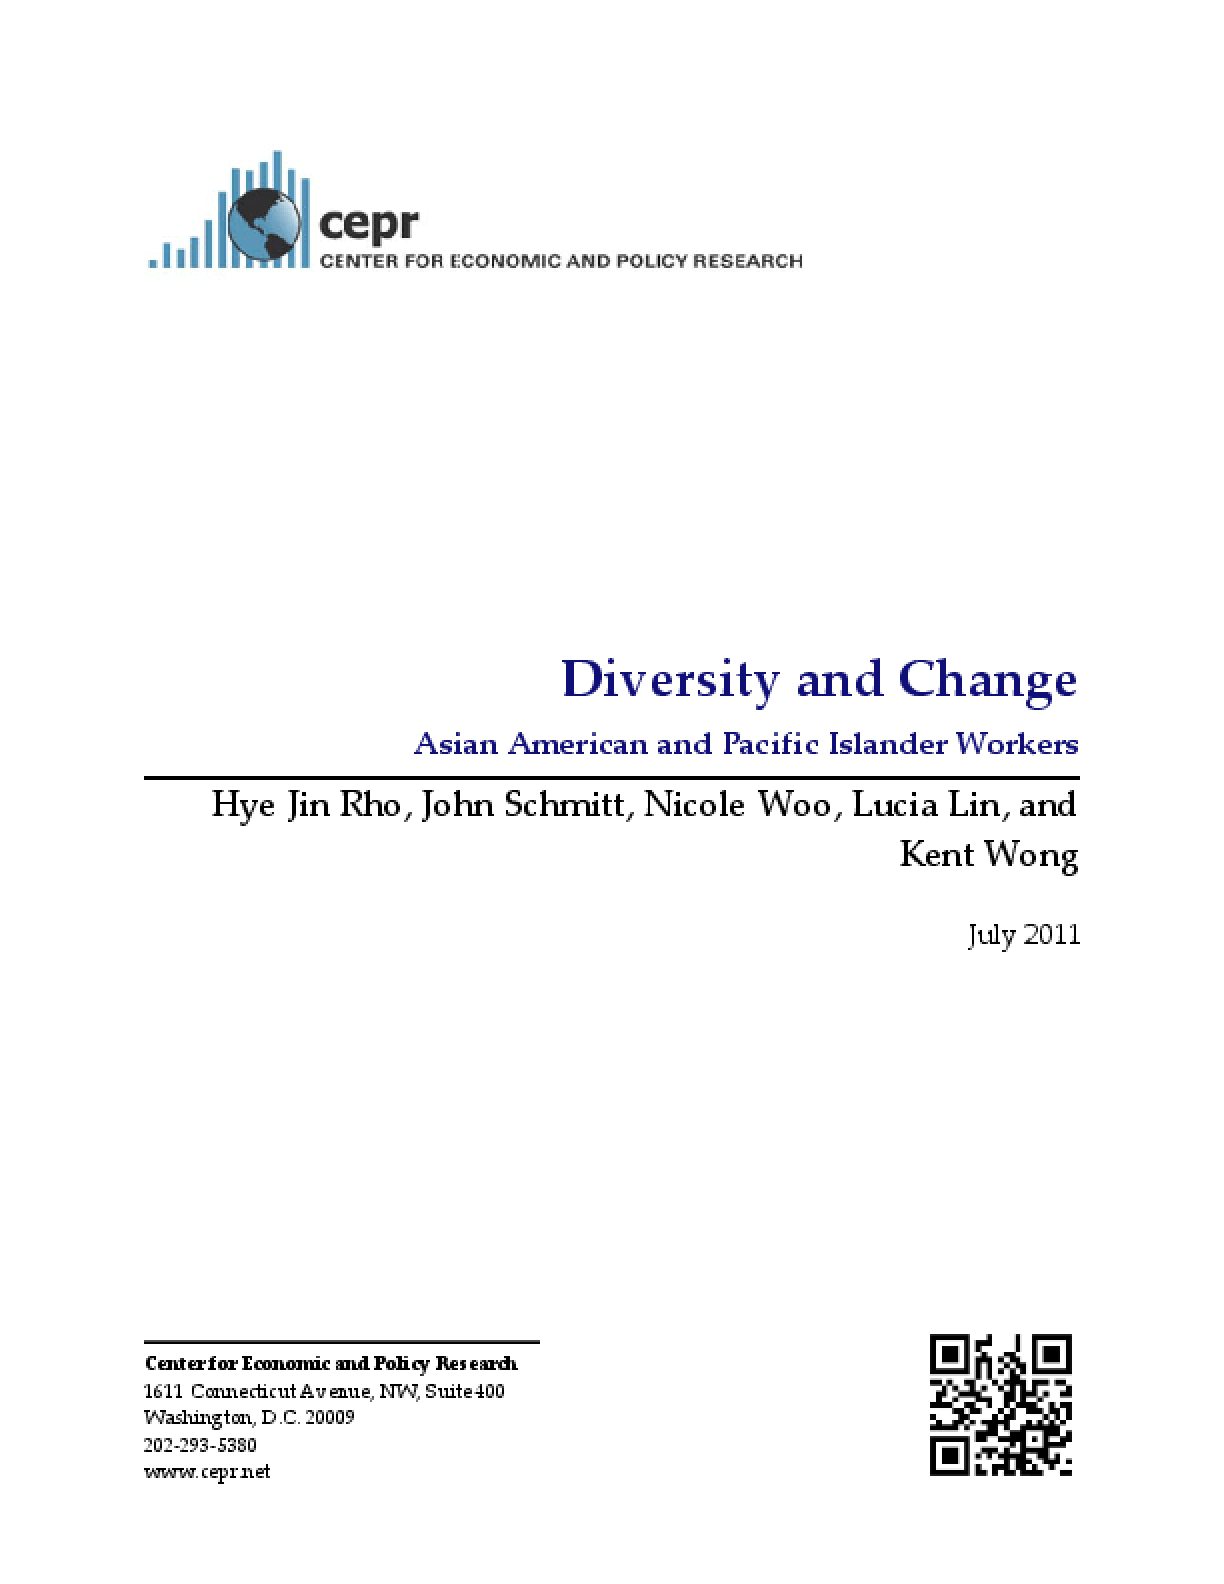 Diversity and Change: Asian American and Pacific Islander Workers